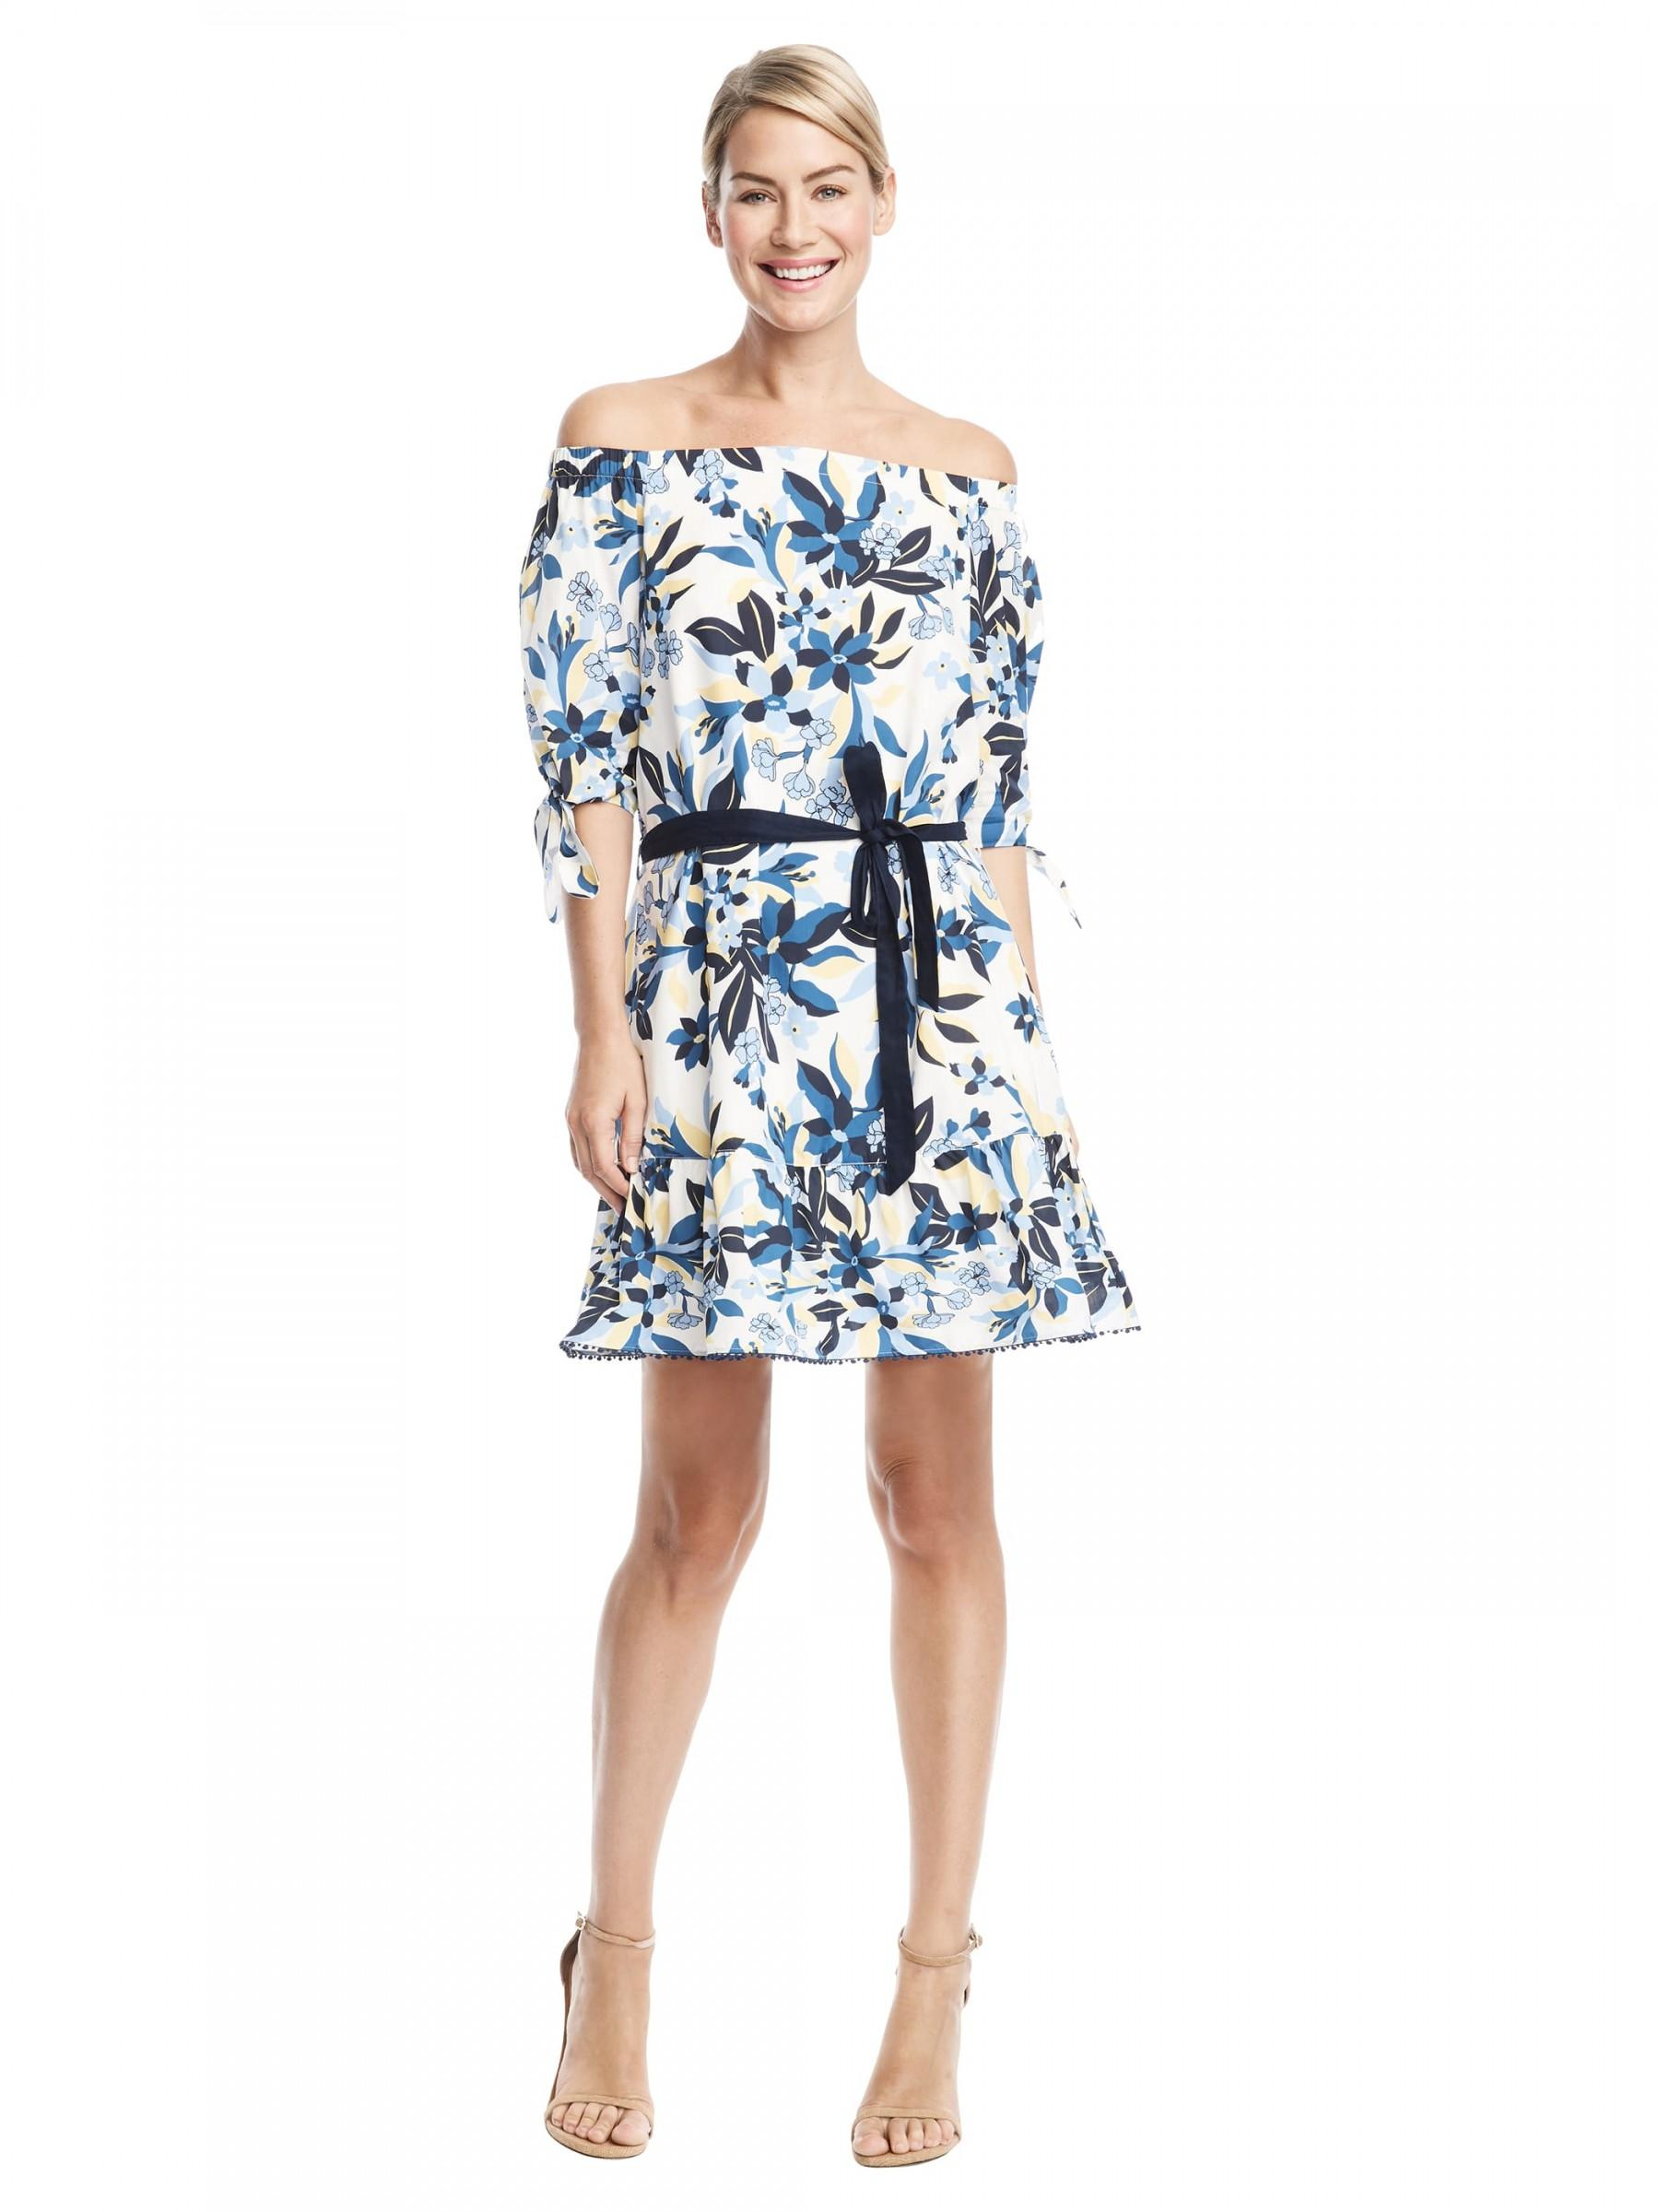 Draper james Bellamy Floral Cover Up in Blue